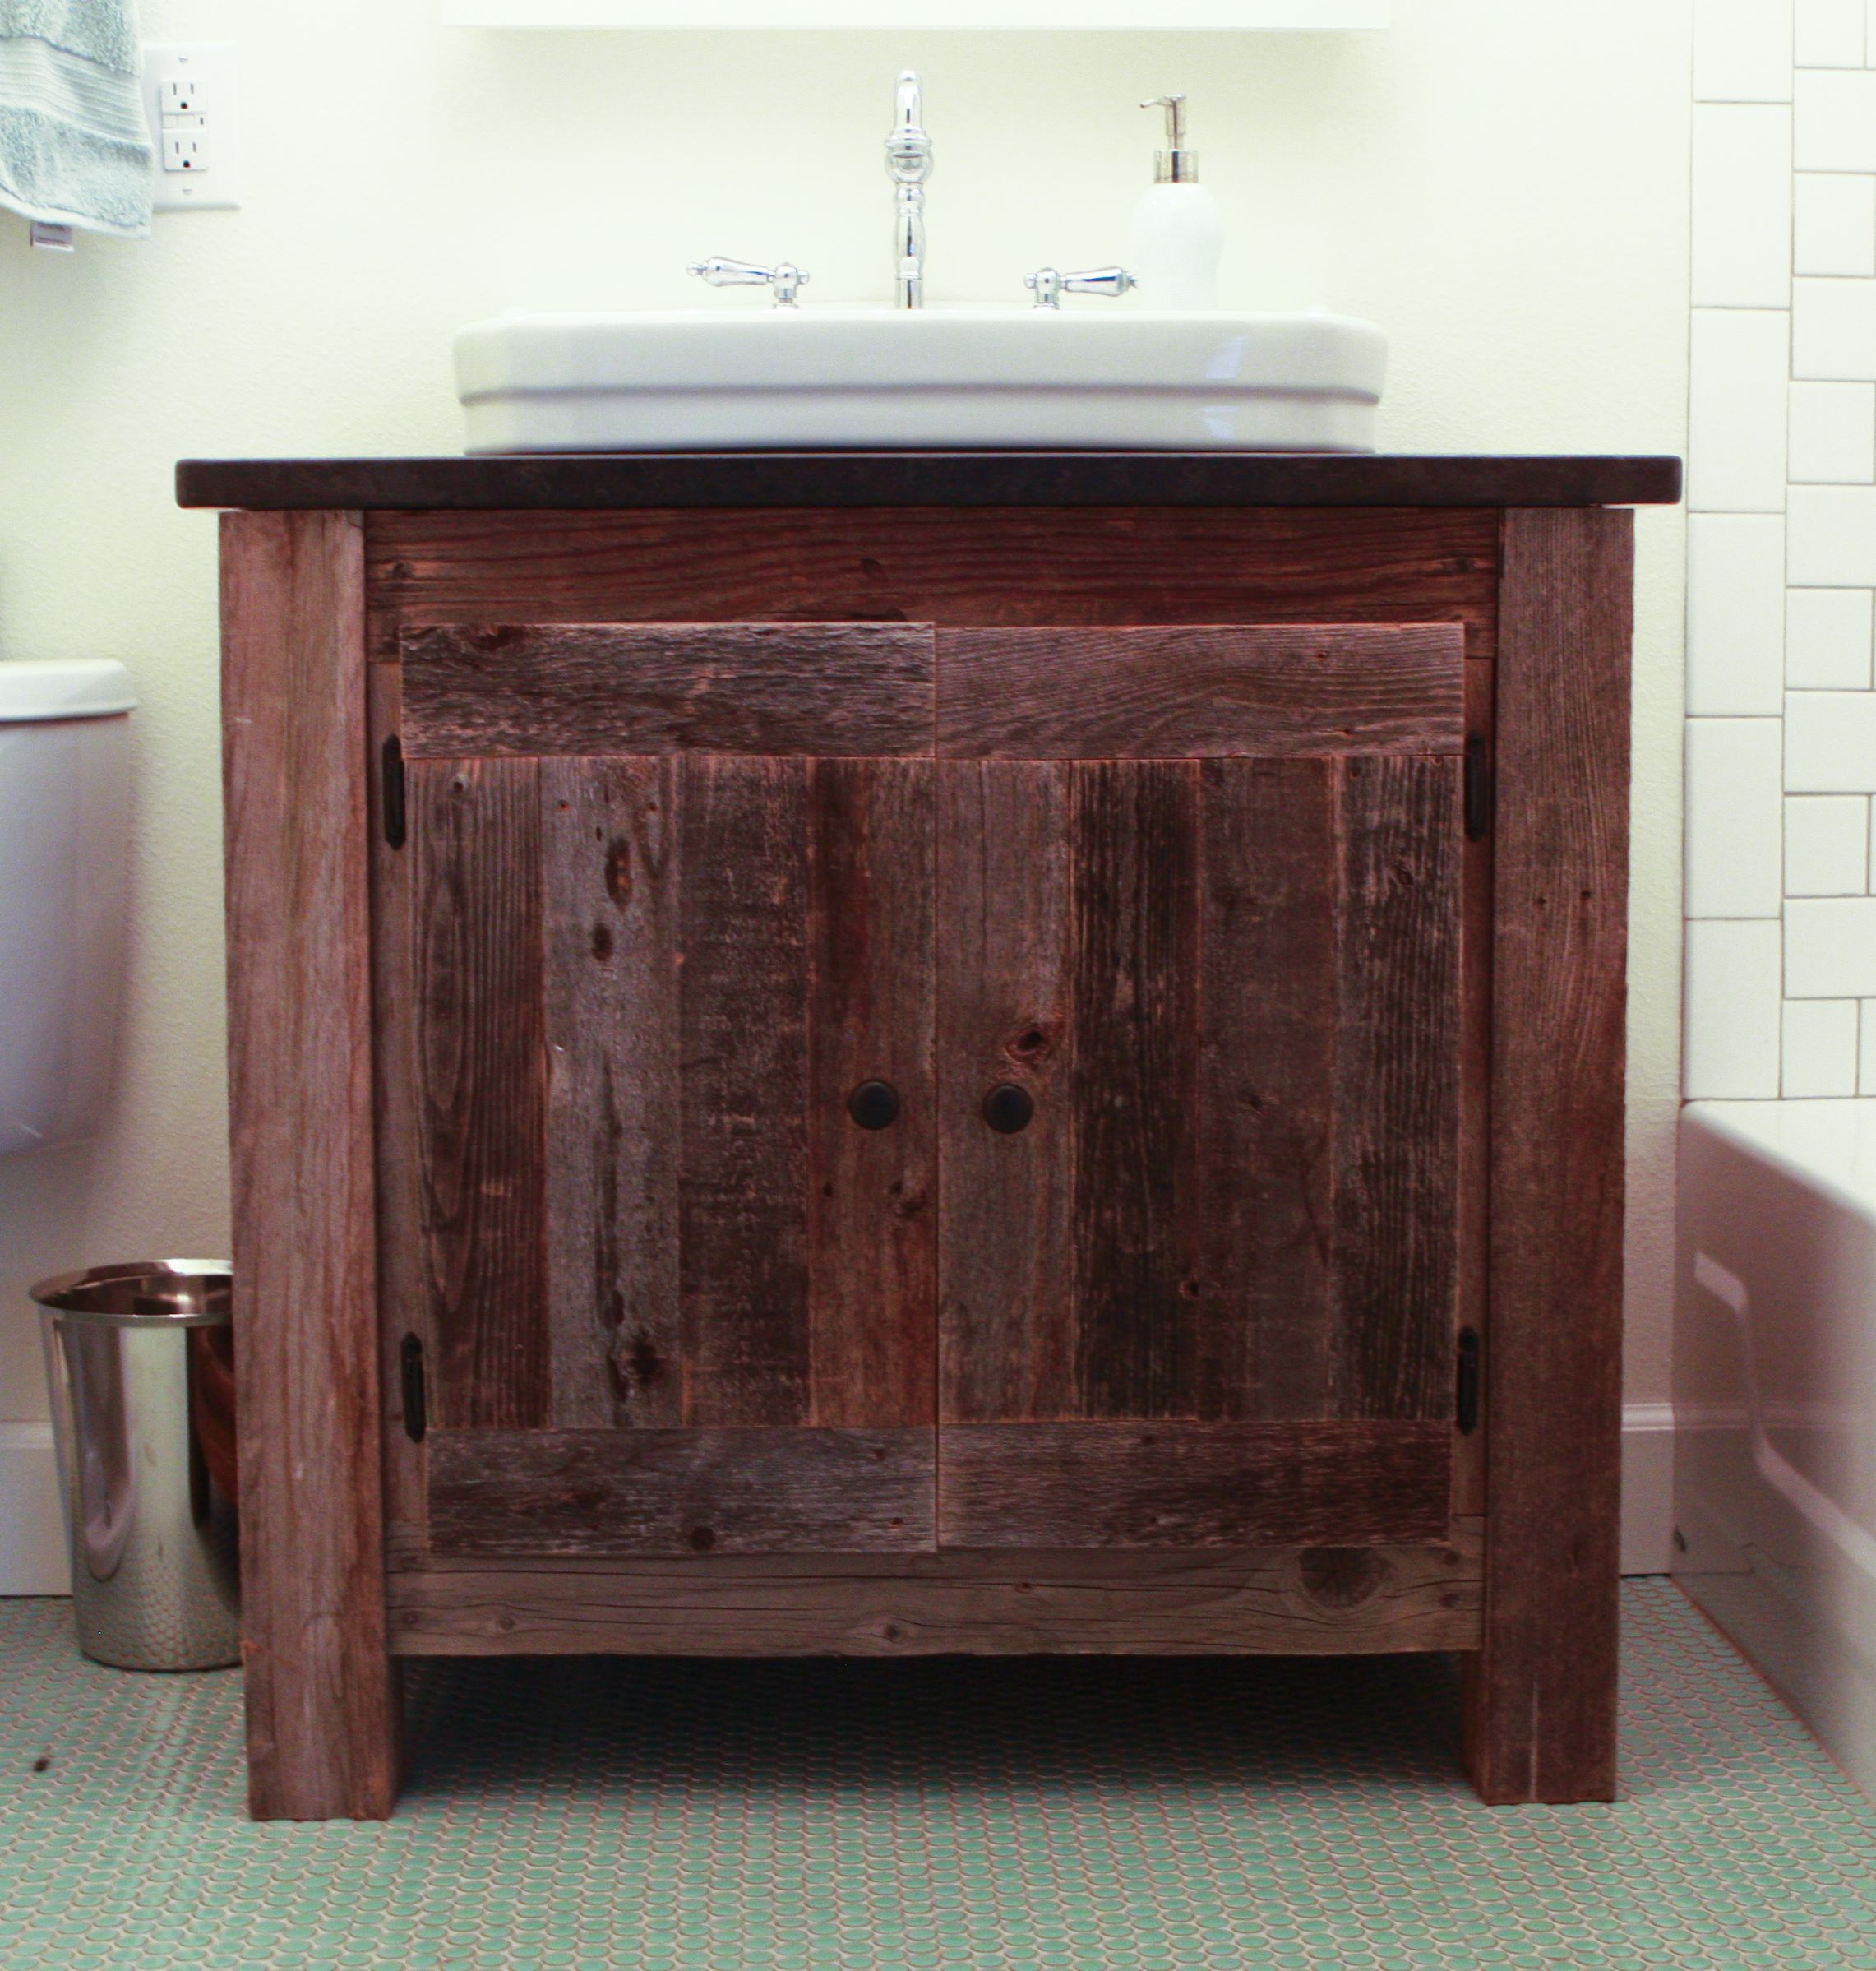 Website Photo Gallery Examples Build a Cedar Vanity Do It Yourself Home Projects from Ana White wooden base around utility sink DIY Ana White Pinterest Vanities Home Projects